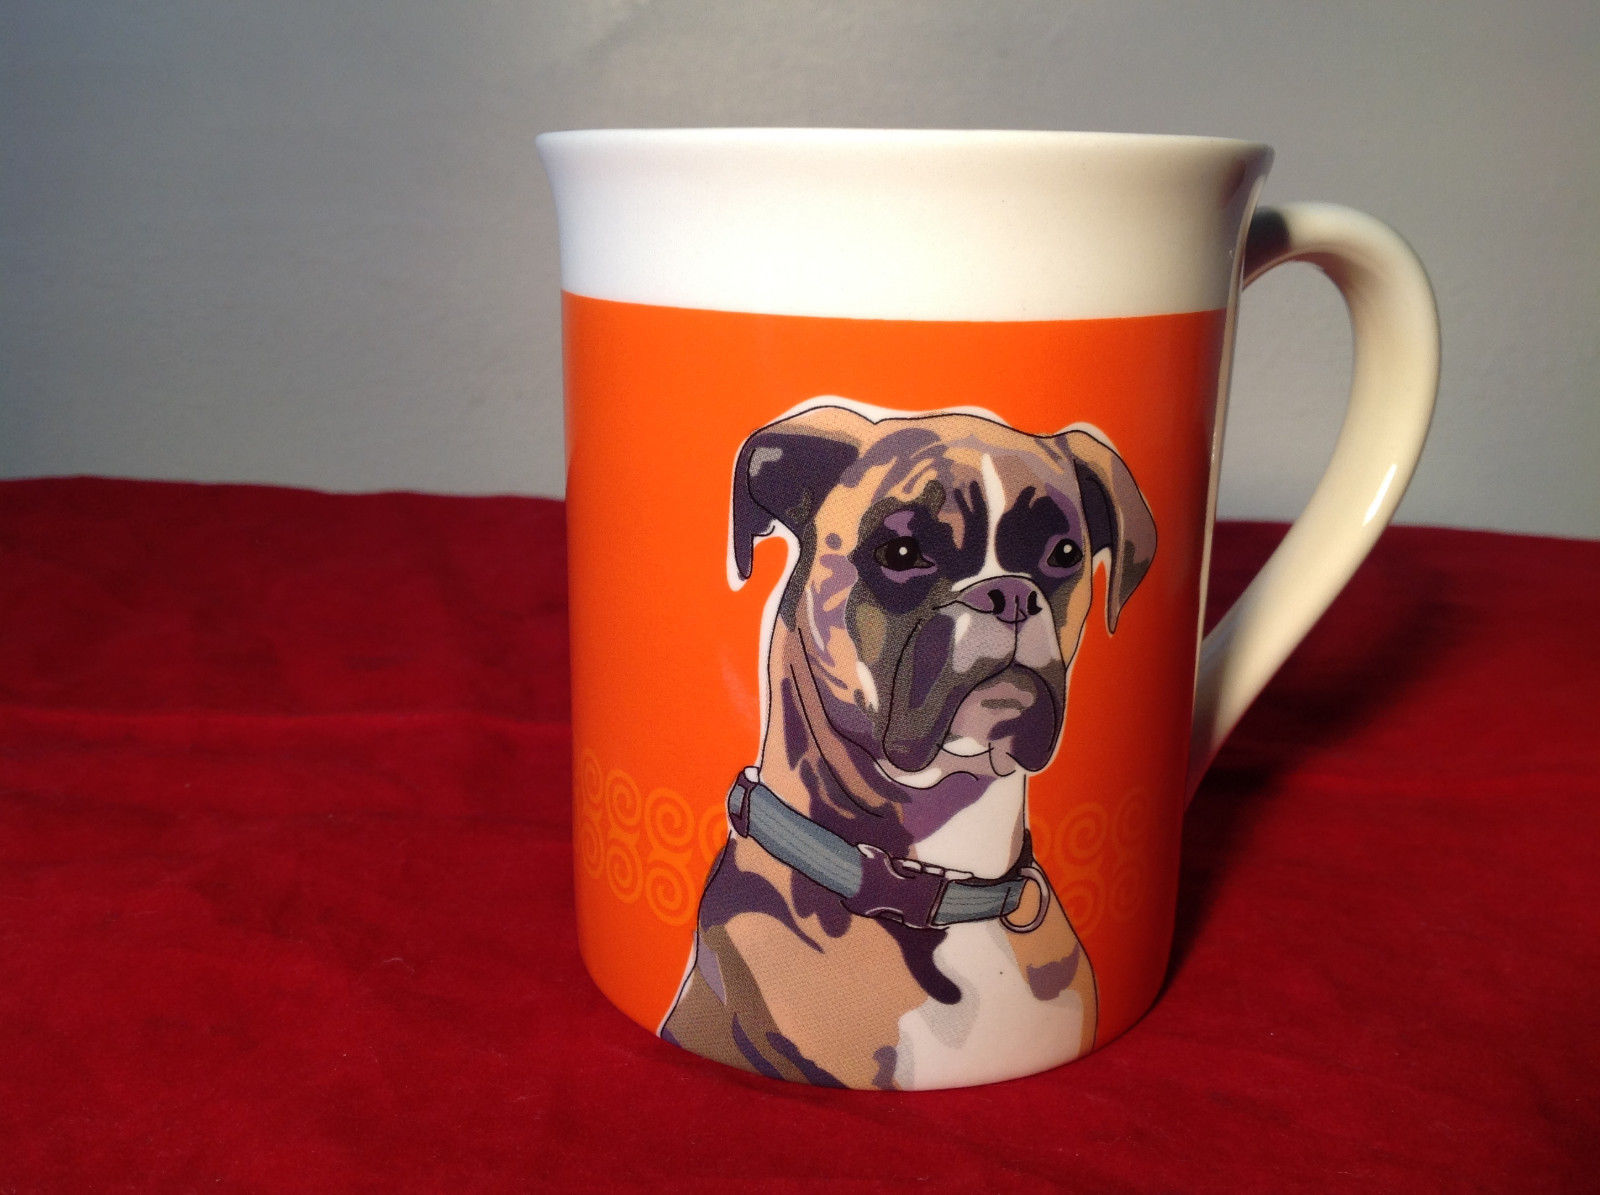 Go Dog Boxer Mug by Paper Russels with Original Box 16 ounces Department 56